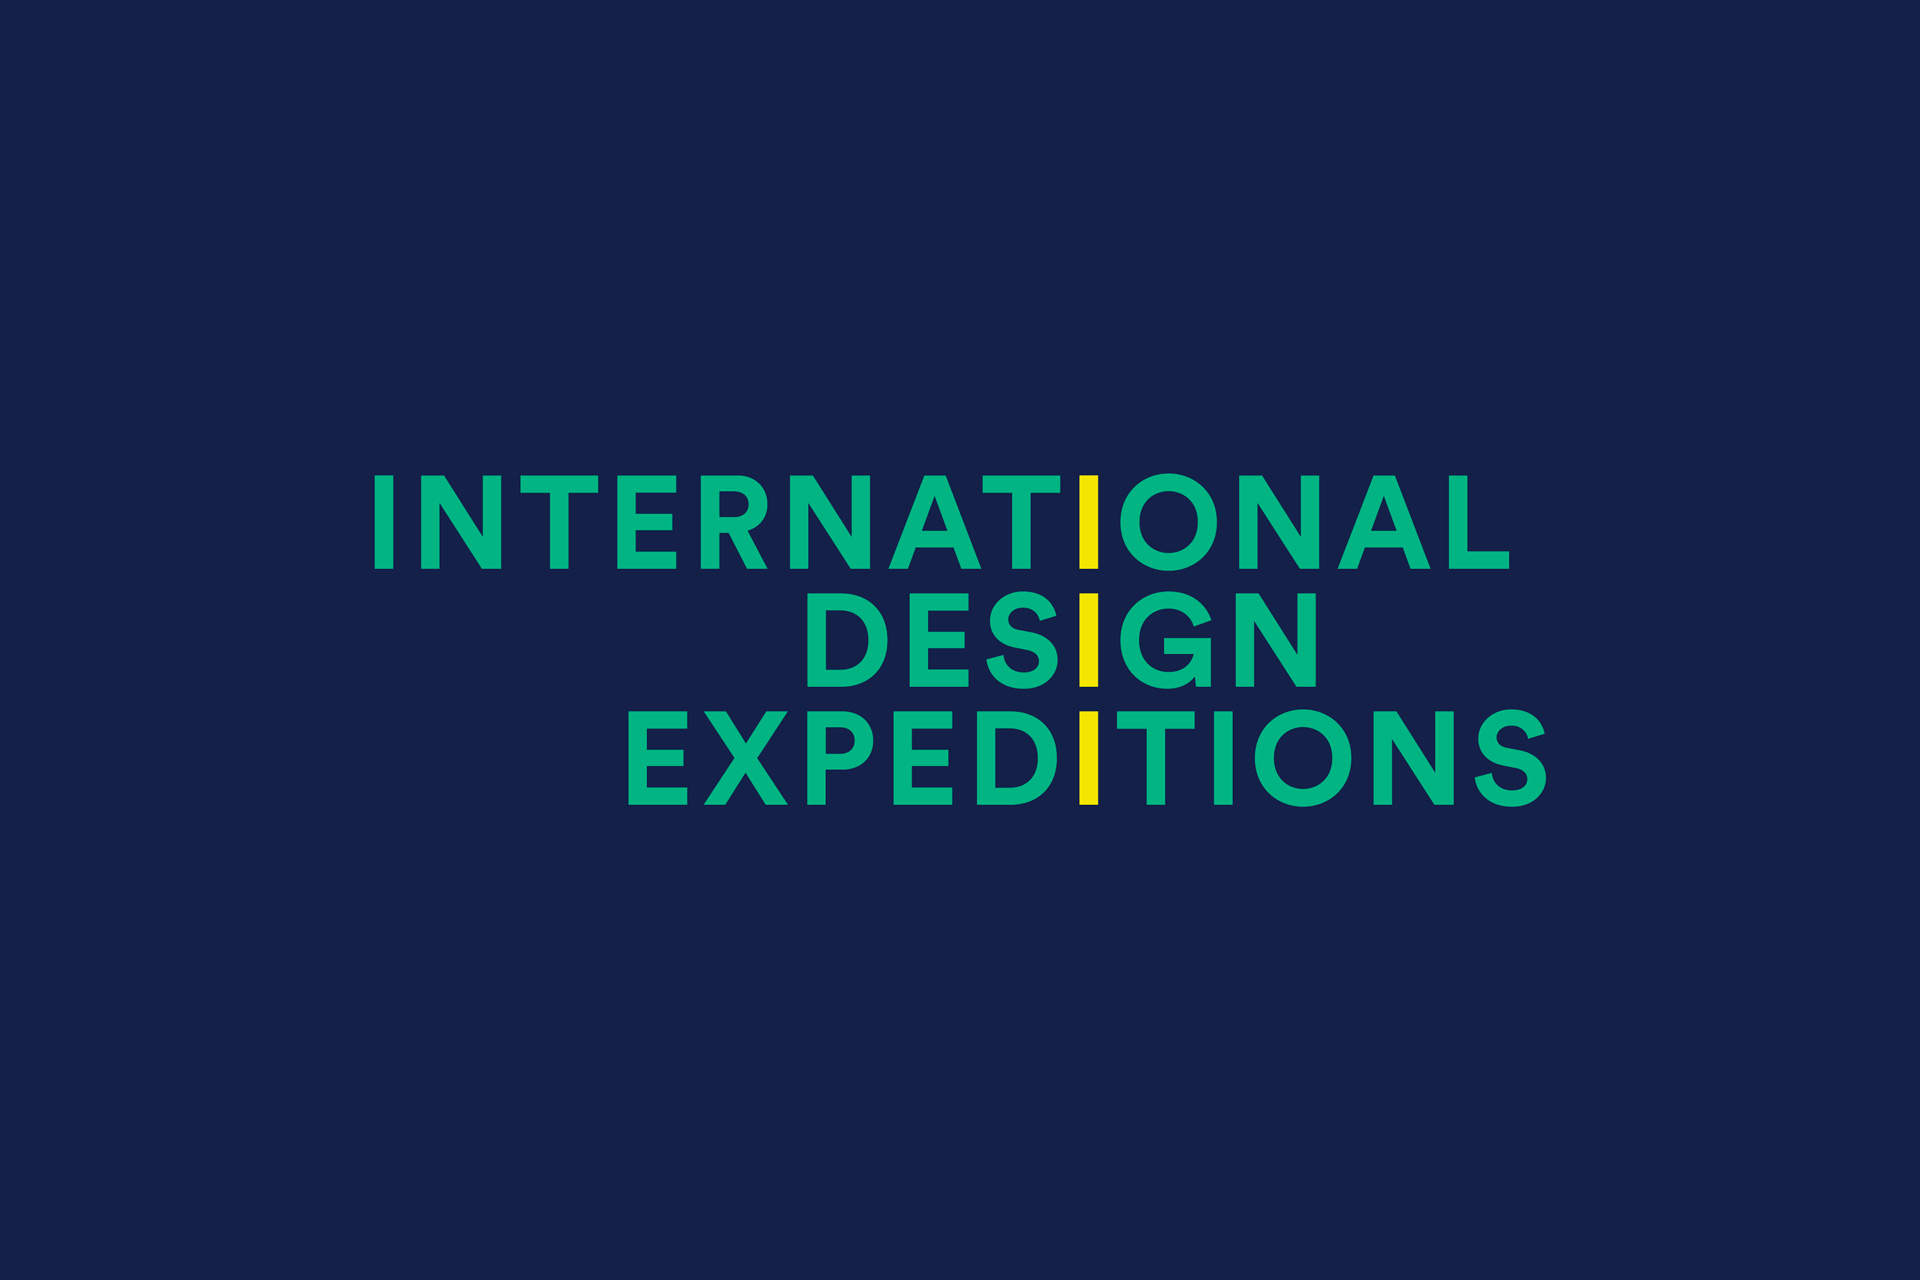 international-design-expeditions-plastac